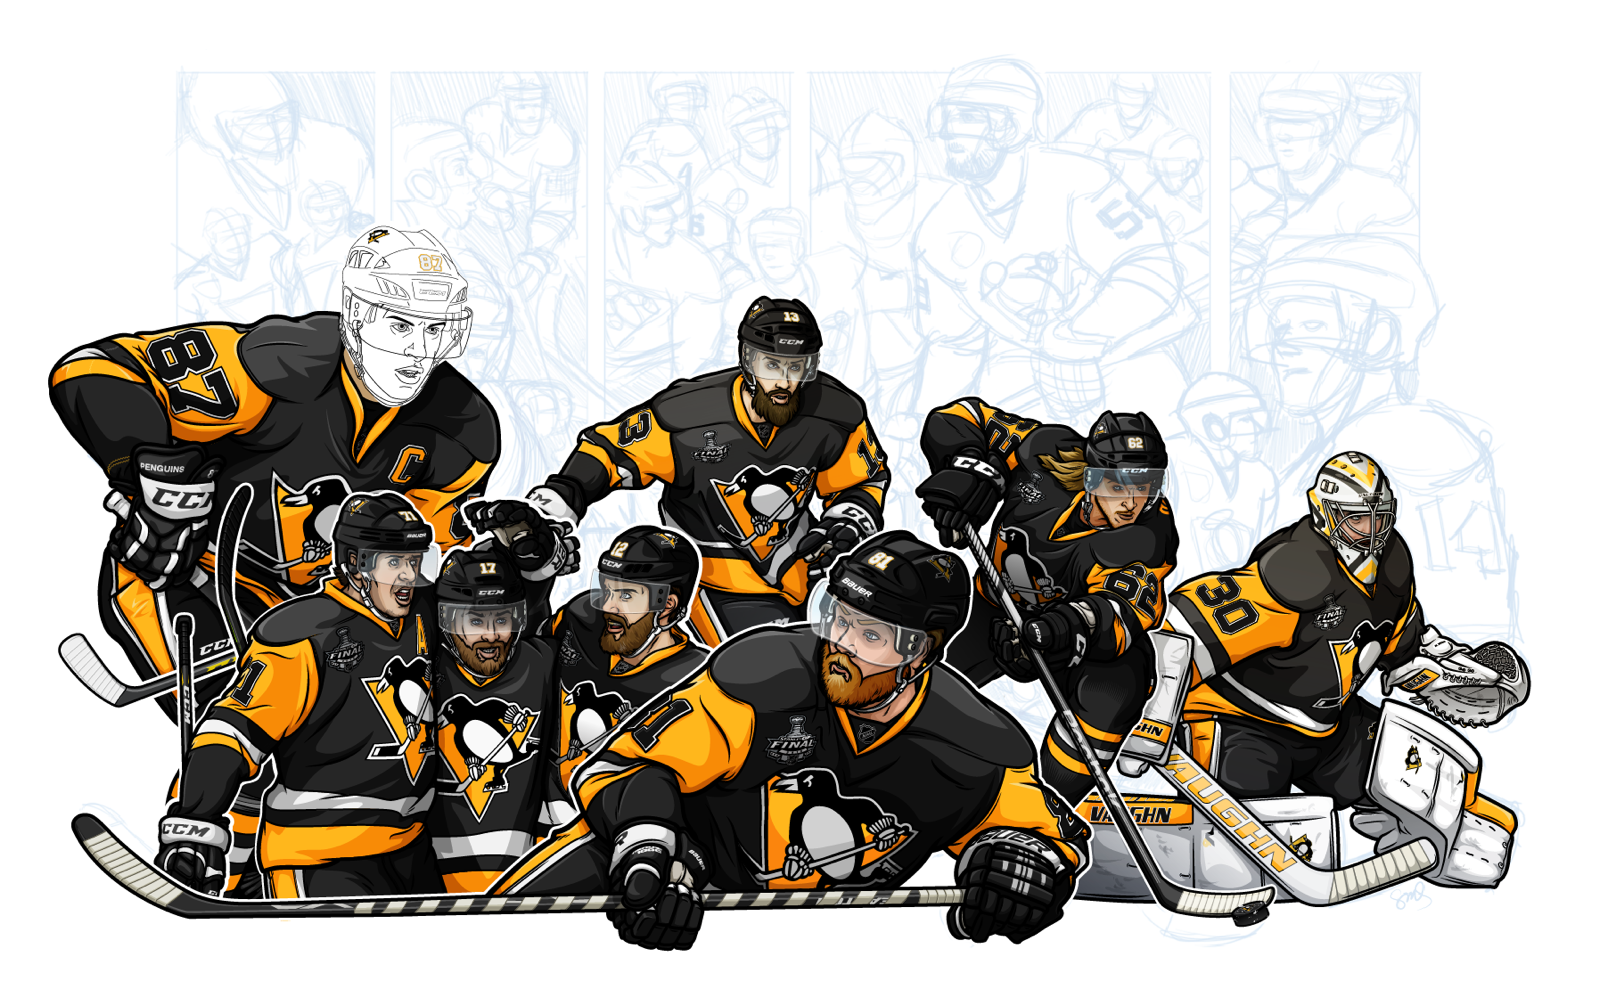 2016 print now up for preorder